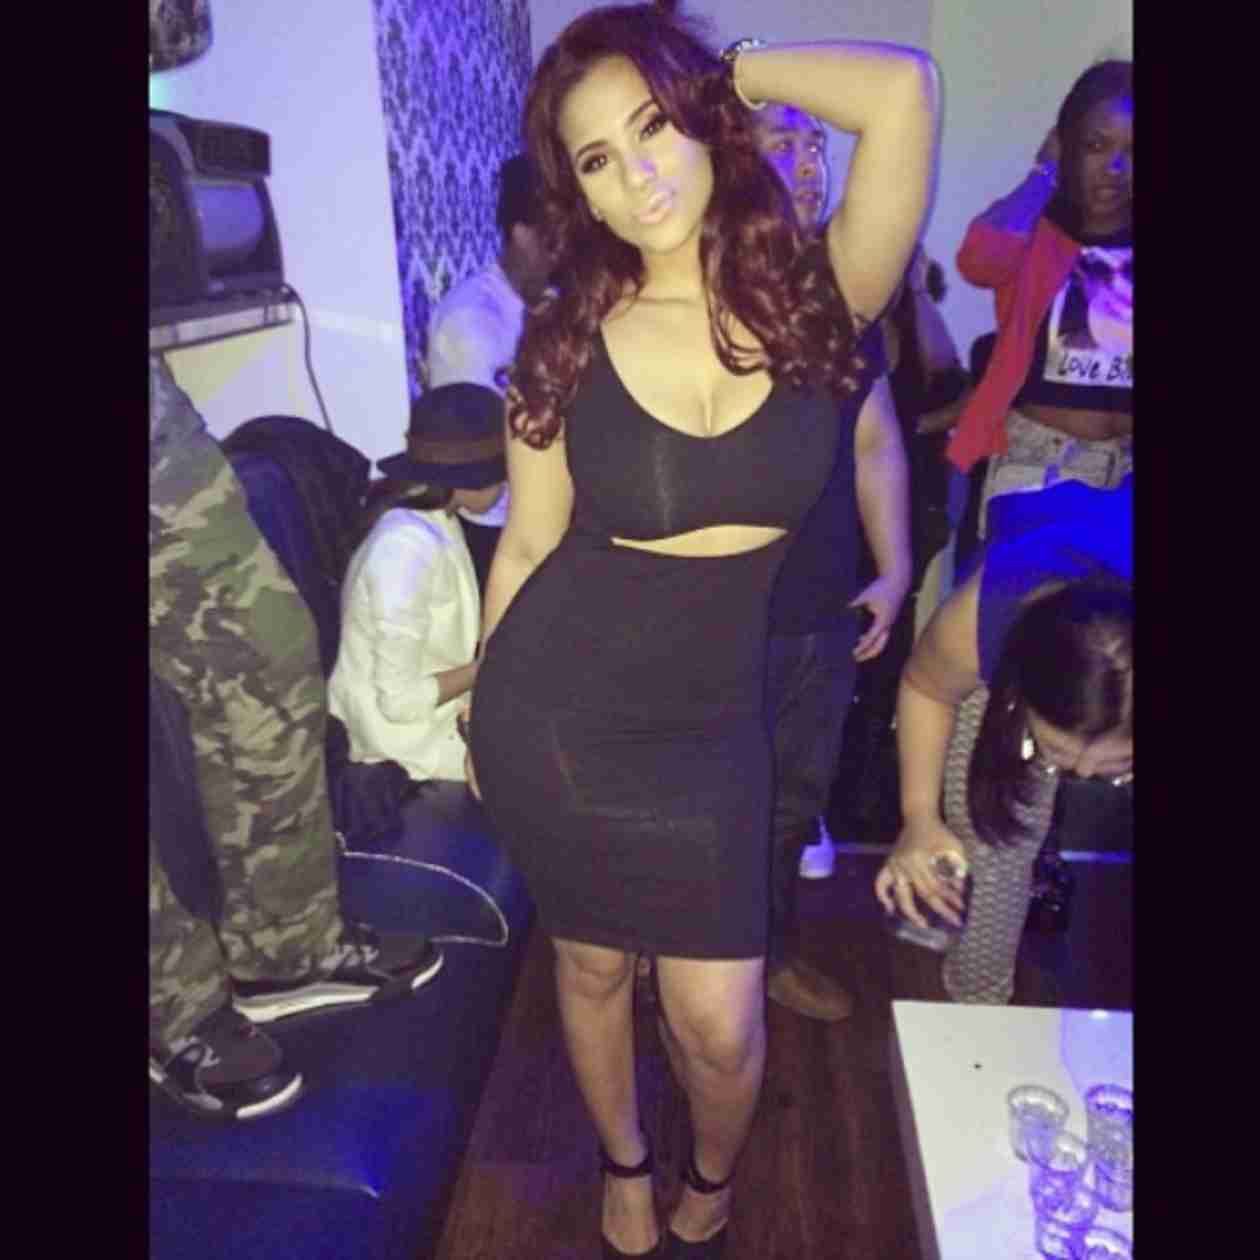 Cyn Santana Undergoes Surgery — What Did She Have Done? (PHOTO)